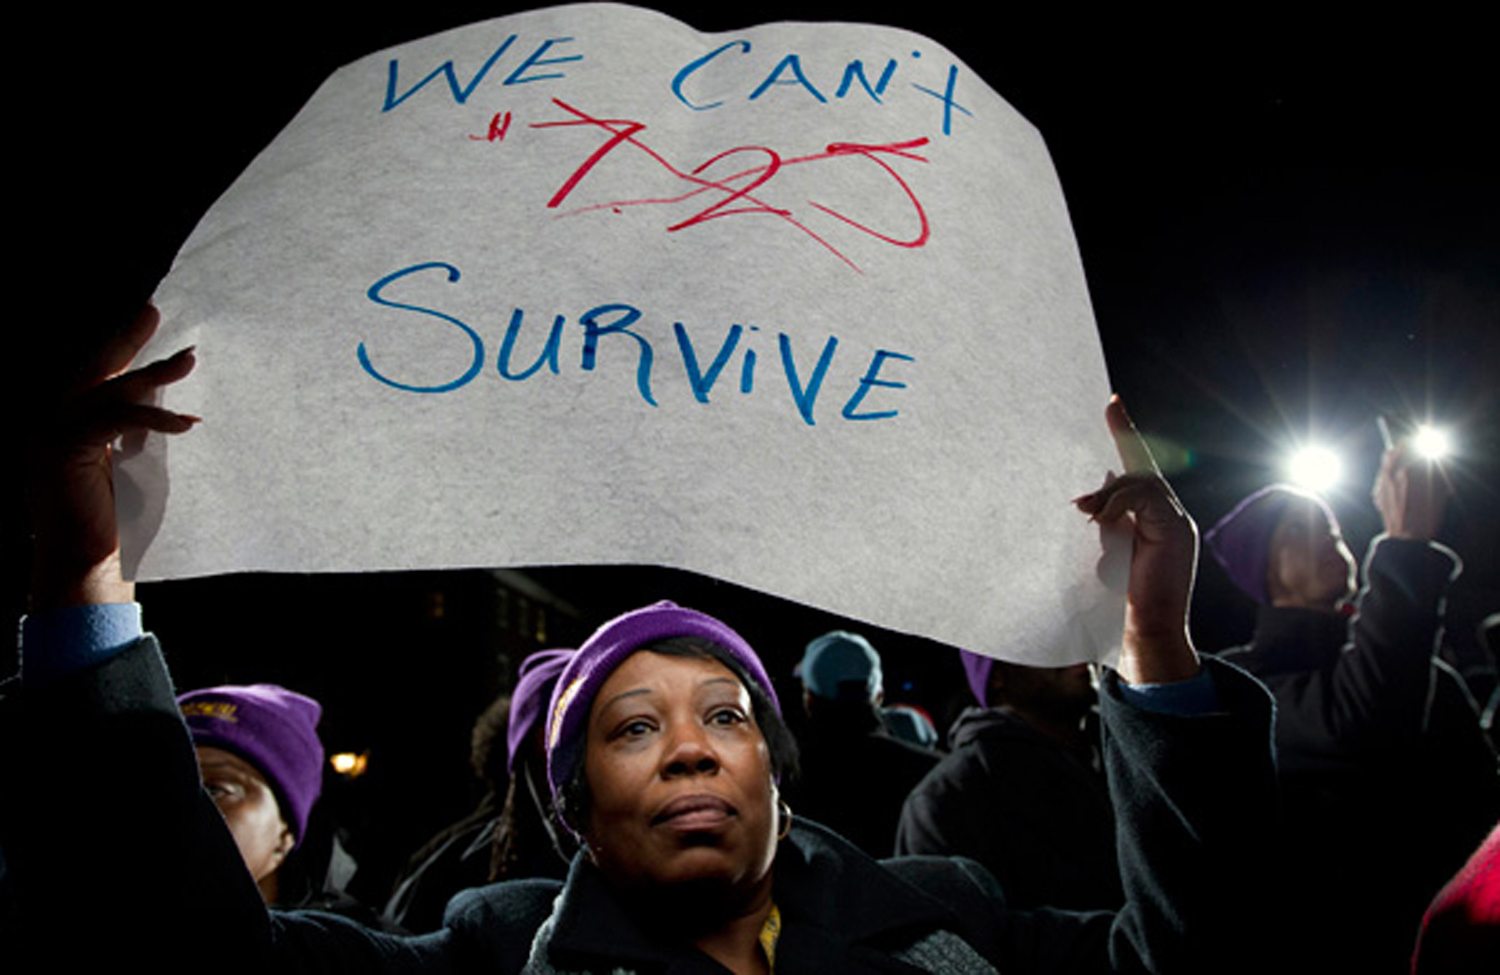 will a minimum wage hike really cost jobs the nation darlene handy of baltimore holds up a sign during a rally to support raising the minimum wage in maryland ap photo jose luis magana